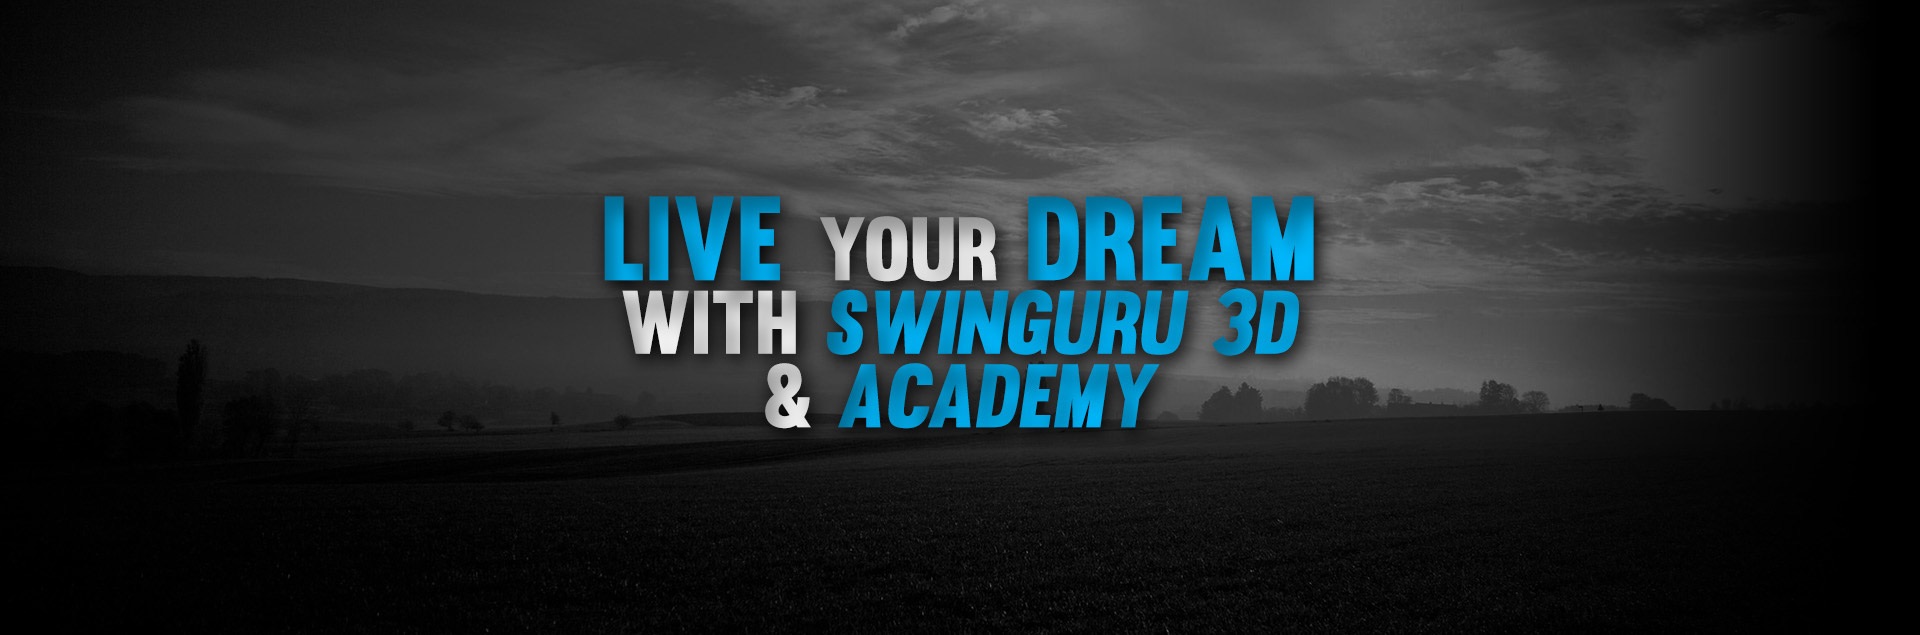 Live your dream with swinguru 3d & academy